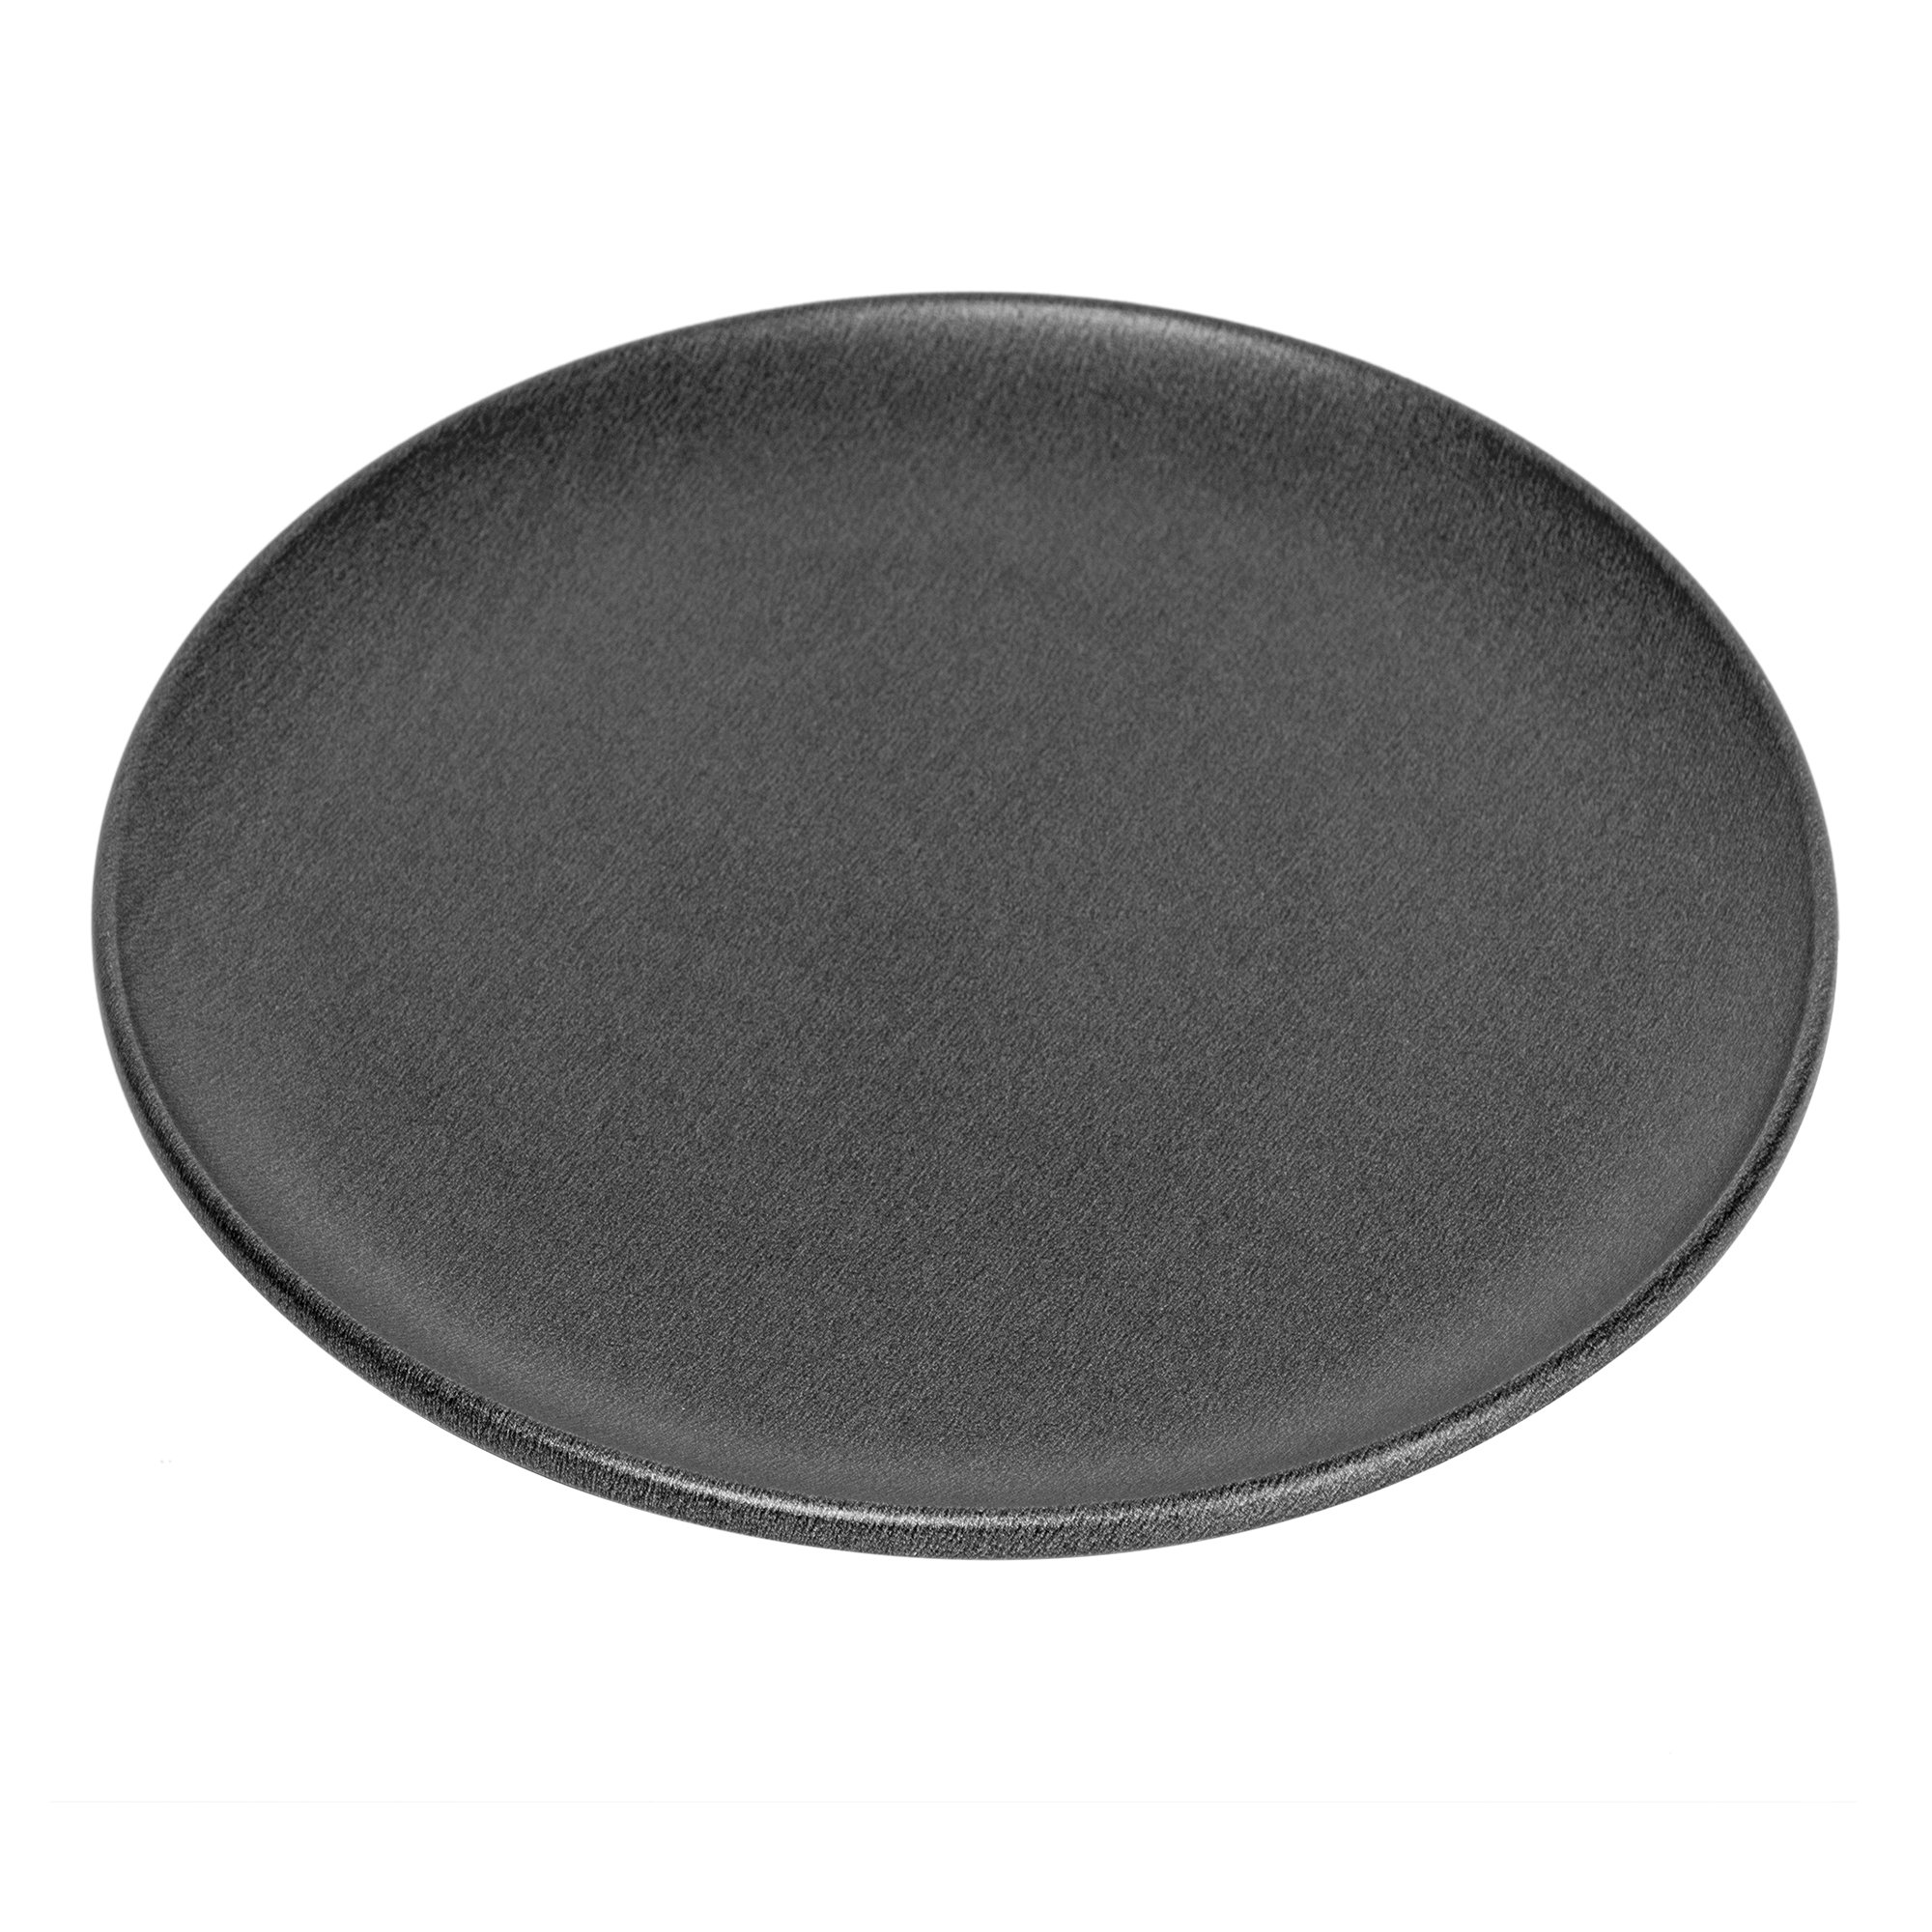 ProBake Teflon Non-Stick 12'' Pizza Pan - American-Made, Teflon Xtra Scratch Resistant Pizza Baking Pan, Easy to Clean and Perfect Size for a Small Get Together